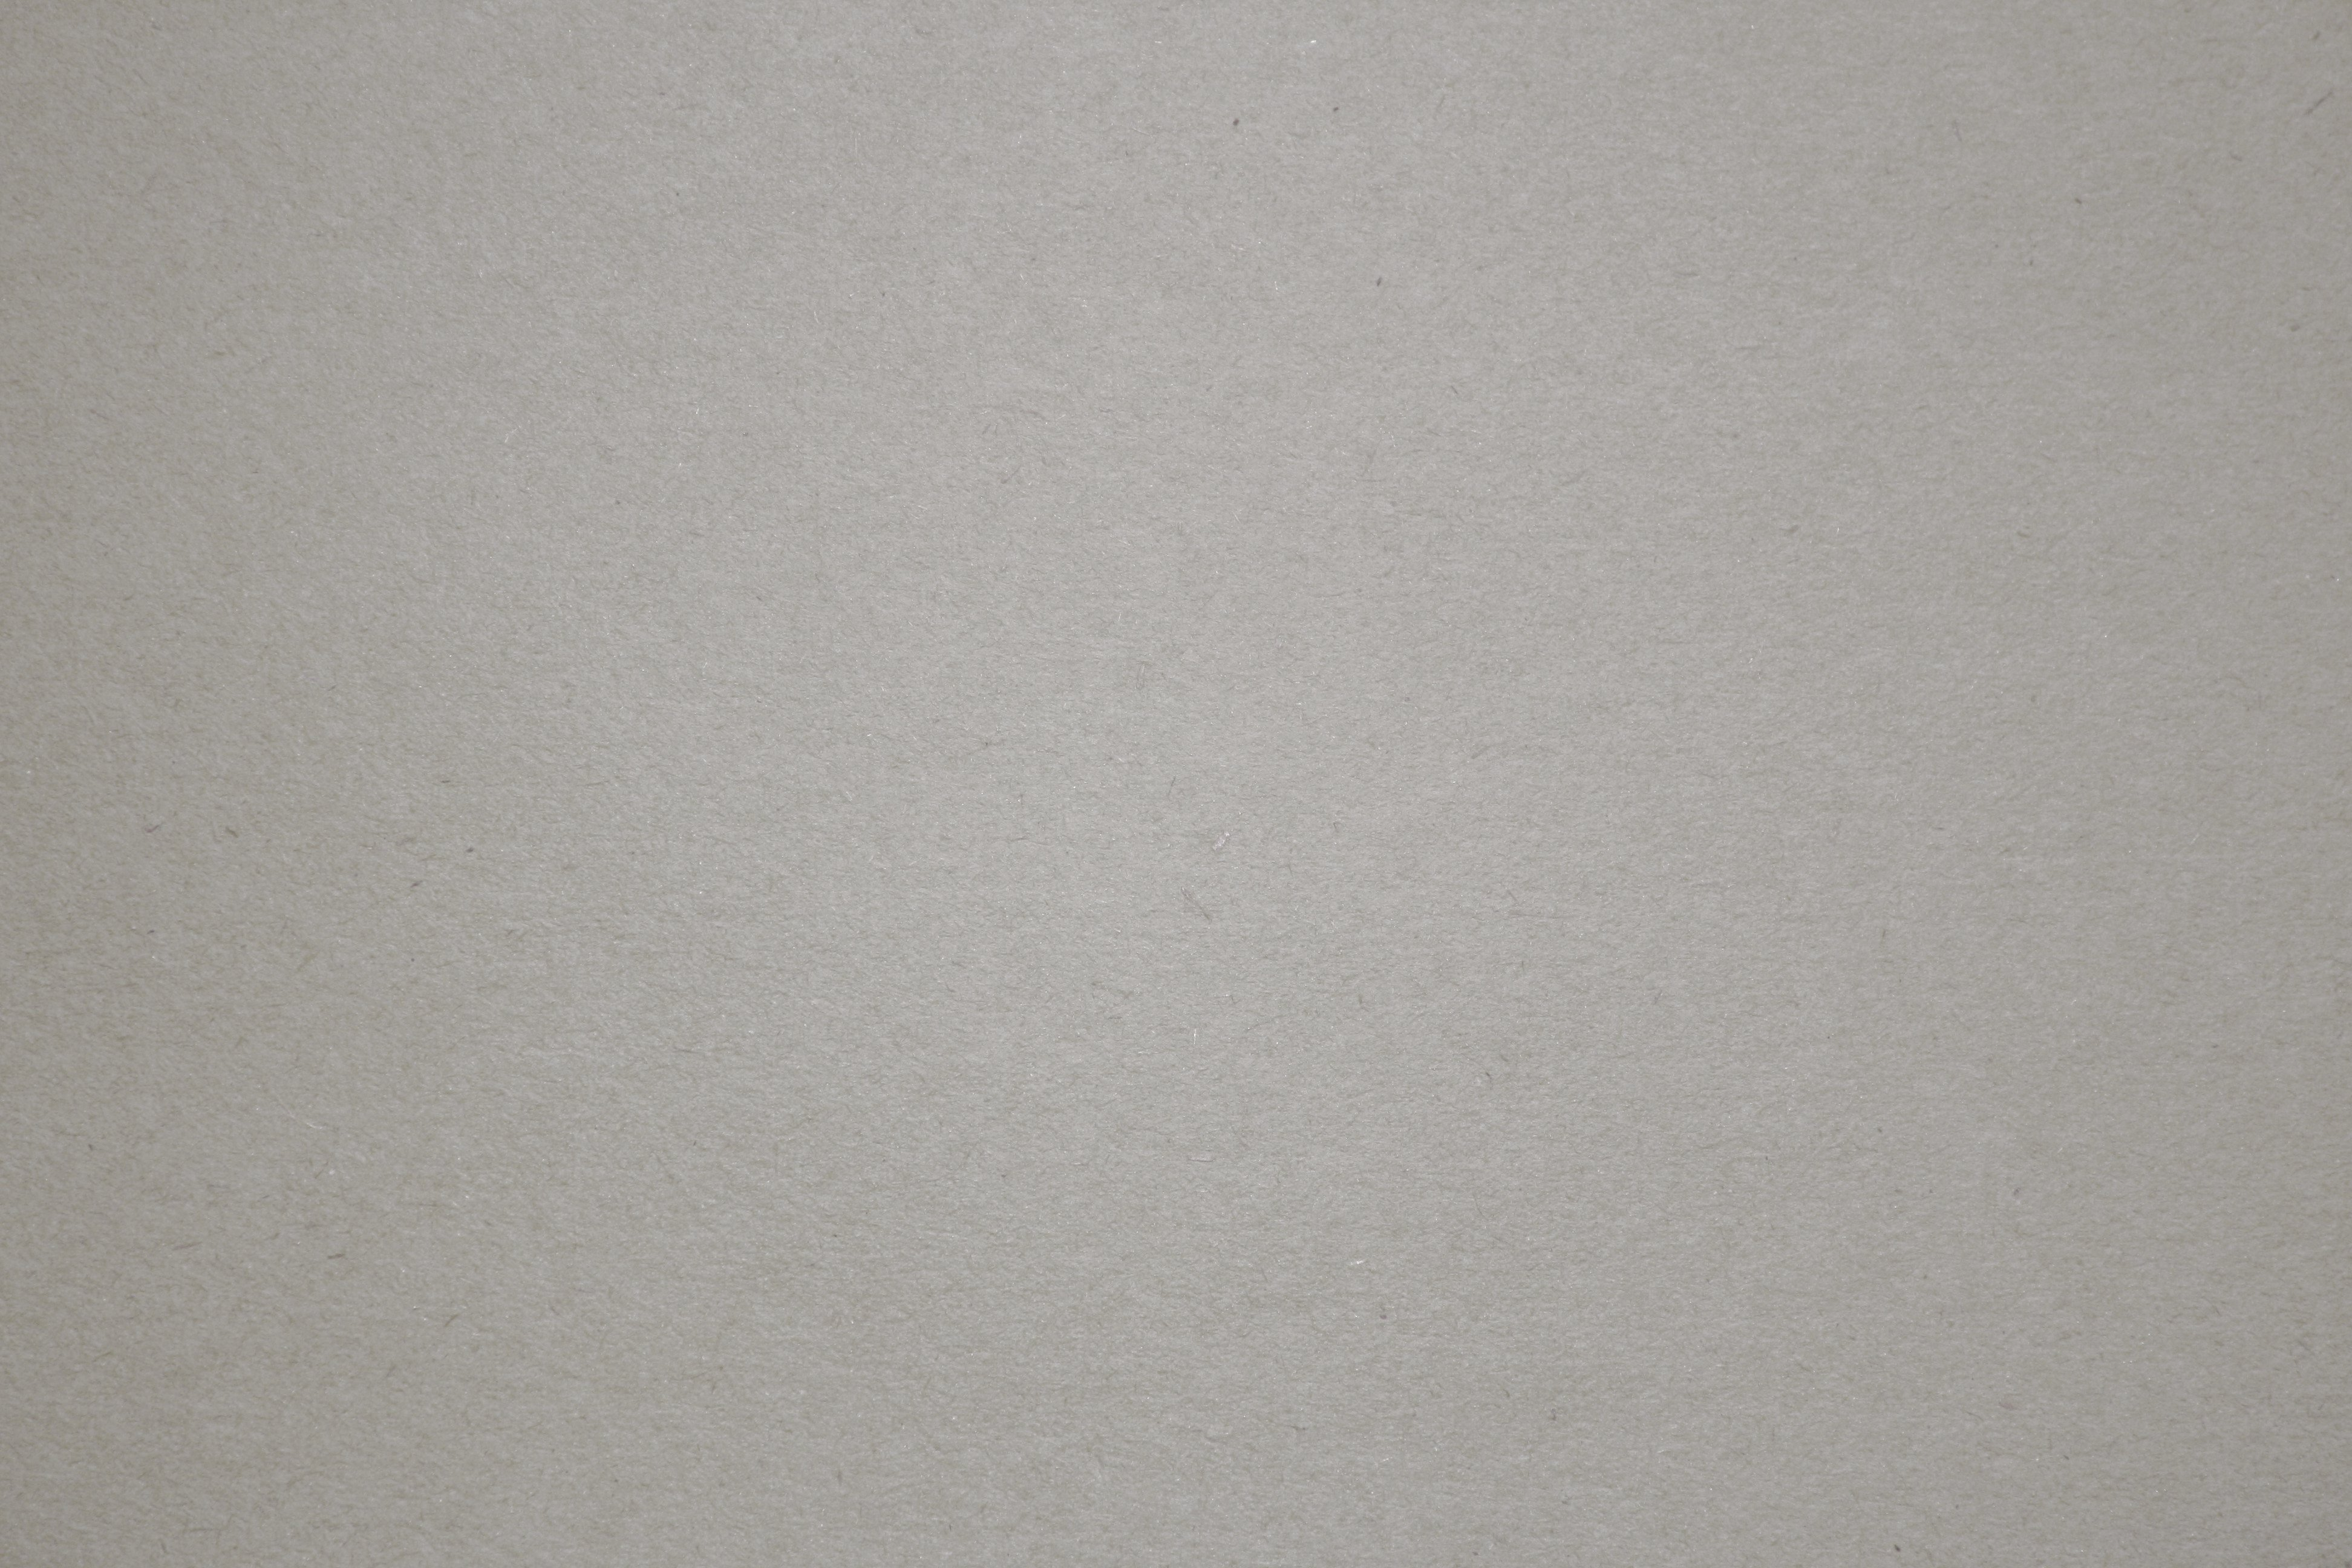 gray construction paper texture picture free photograph